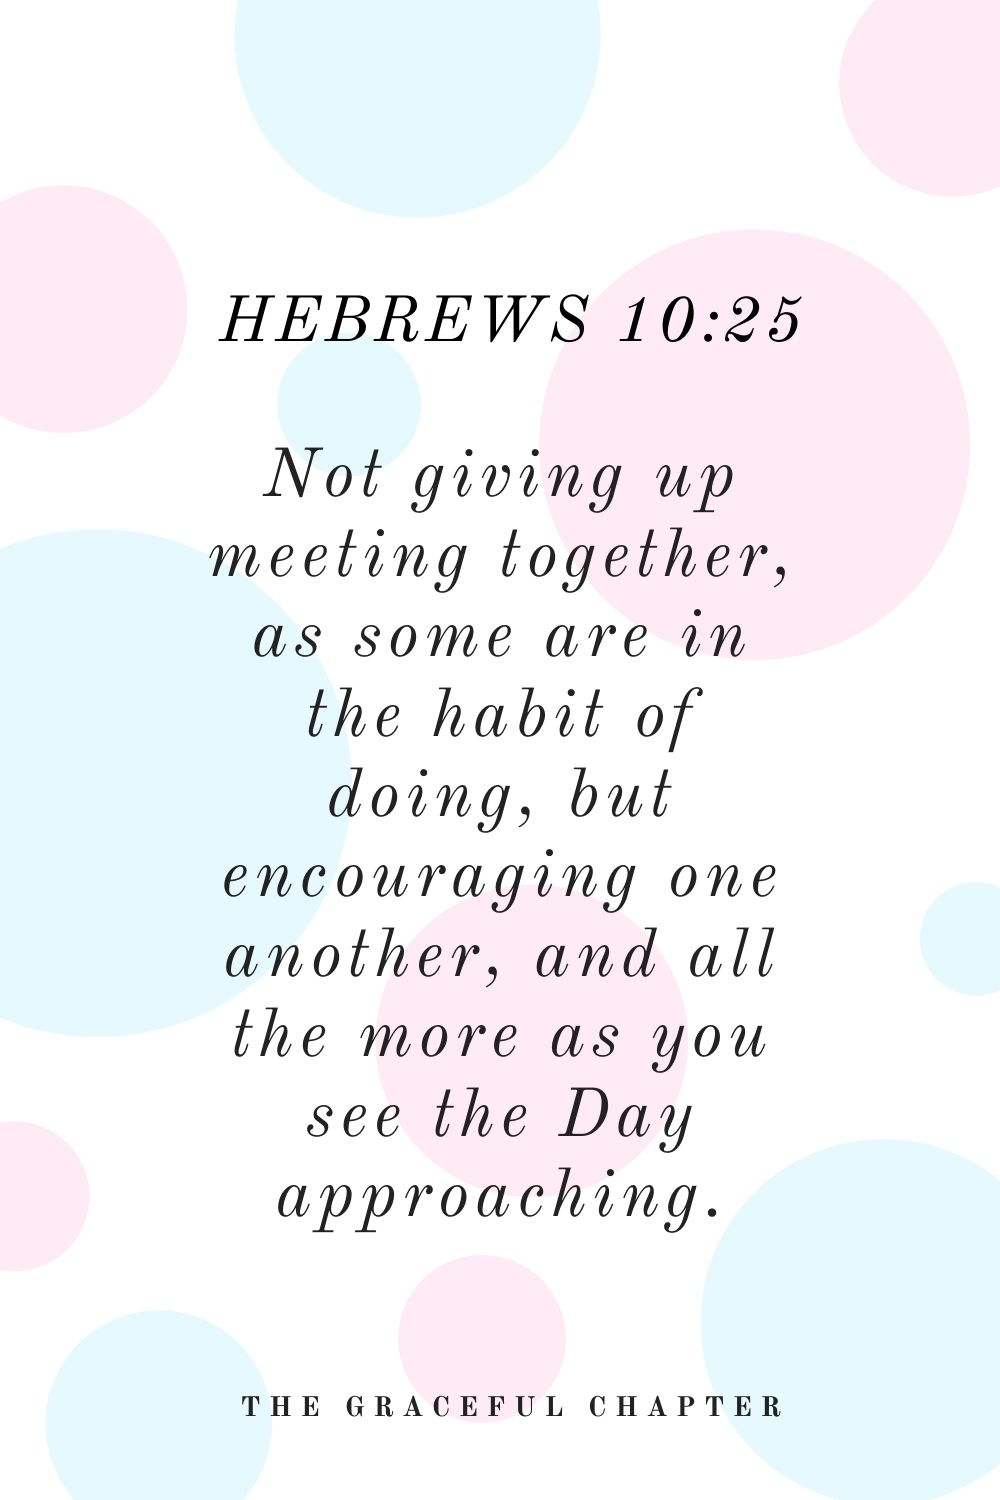 Not giving up meeting together, as some are in the habit of doing, but encouraging one another, and all the more as you see the Day approaching. Hebrews 10:25